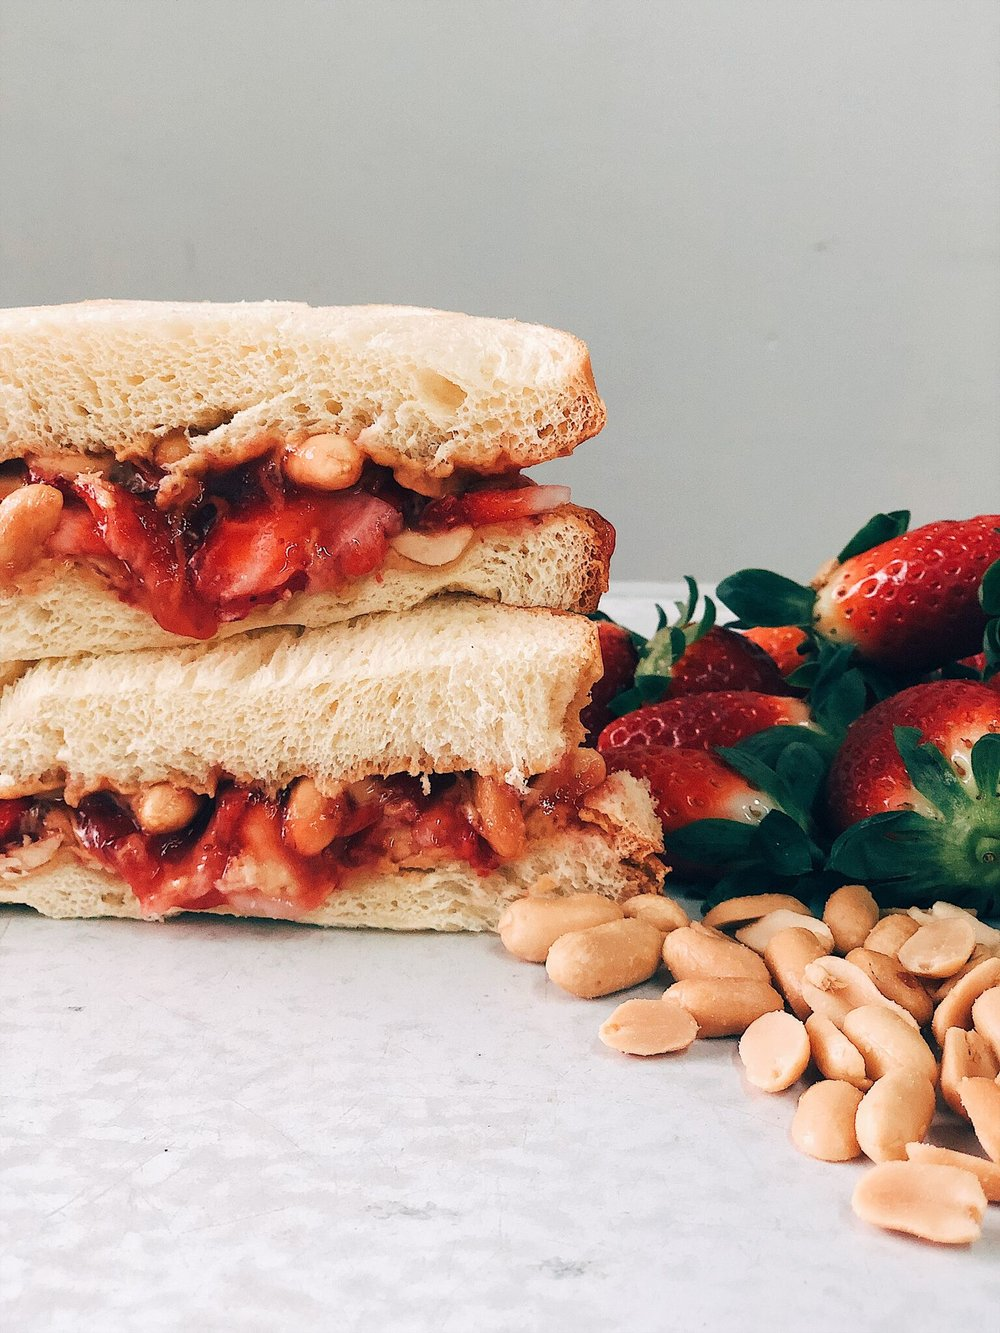 PB+J #1 - Our first PB+J idea comes from Chef Peter Lemon of Wax Paper in LA.Take potato bread and layer with creamy peanut butter, Strawberry Bourbon jam, fresh peanuts, and freshly cut strawberries. For easiest sandwich eating, cut in a diagonal!